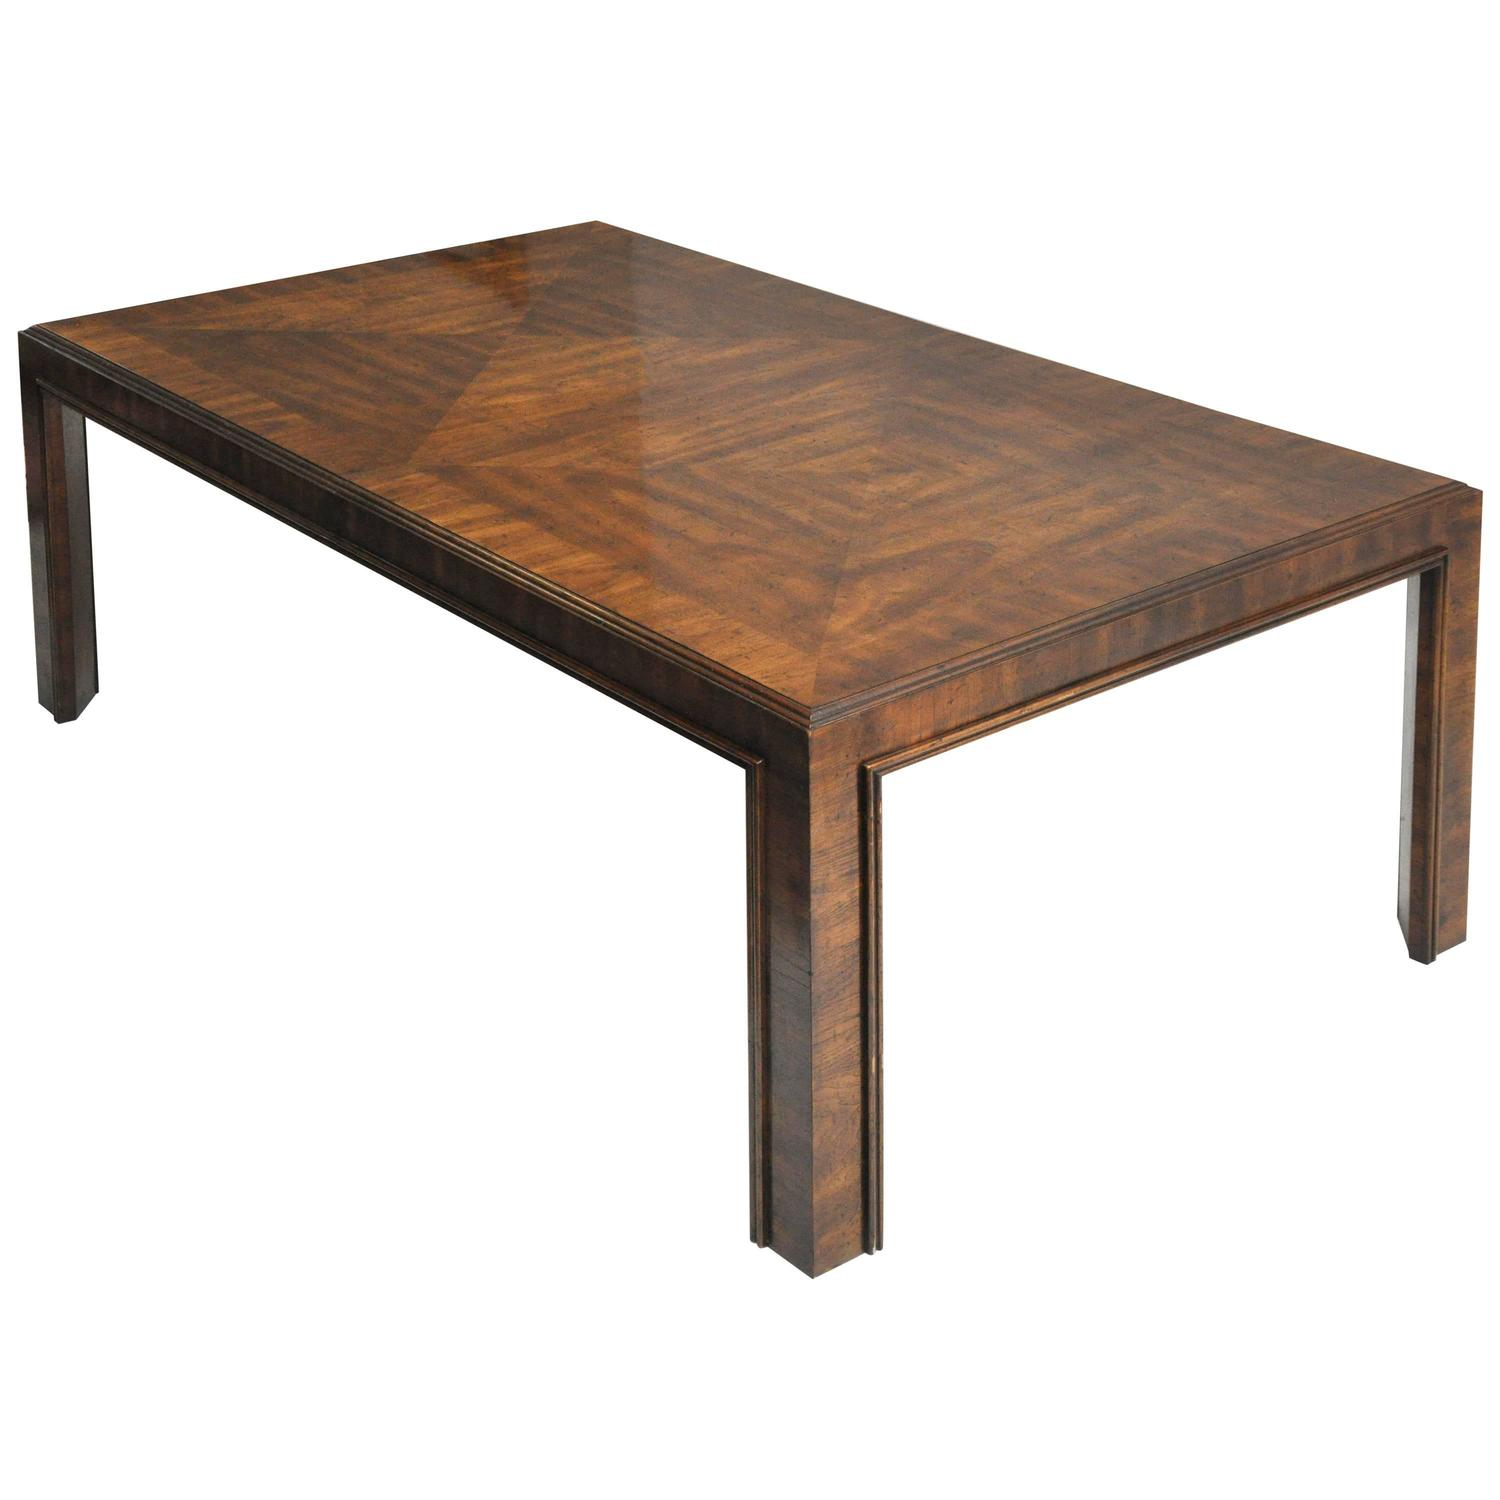 Drexel long dining table with unique woodgrain design for for Unique dining table design